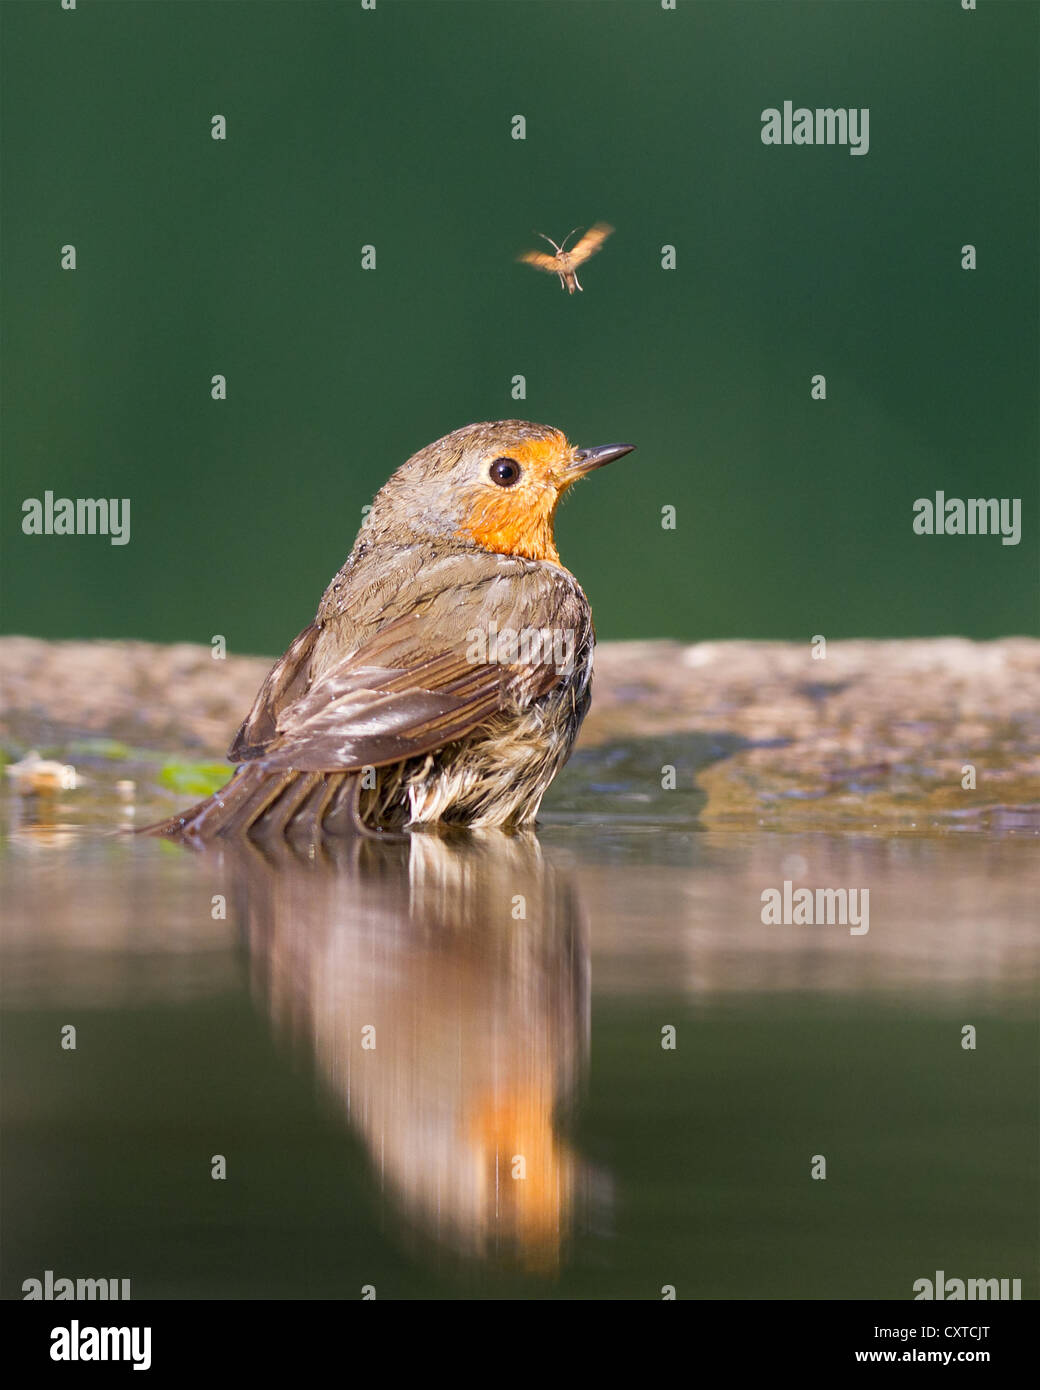 European robin (Erithacus rubecula) bathing in a forest pool with an insect in background - Stock Image